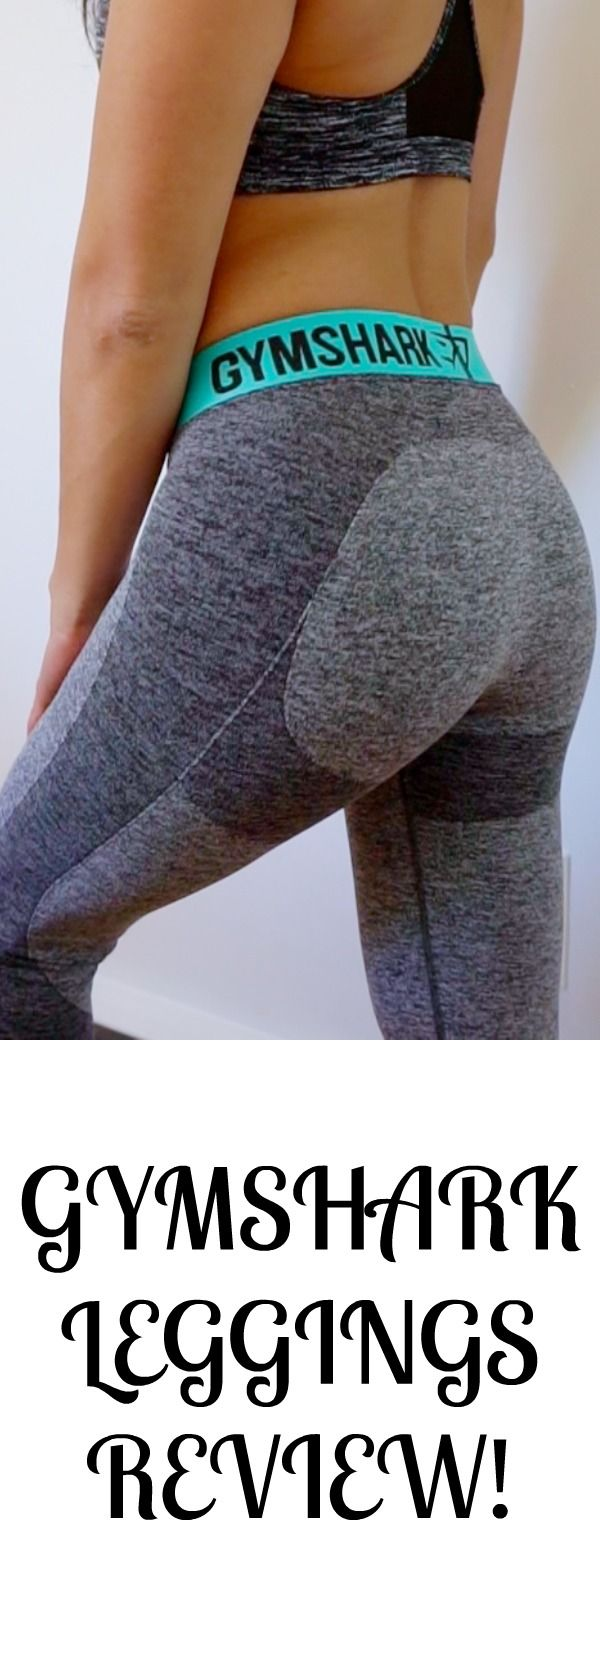 The new gymshark flex leggings honest review, squat test, sizing, and more!